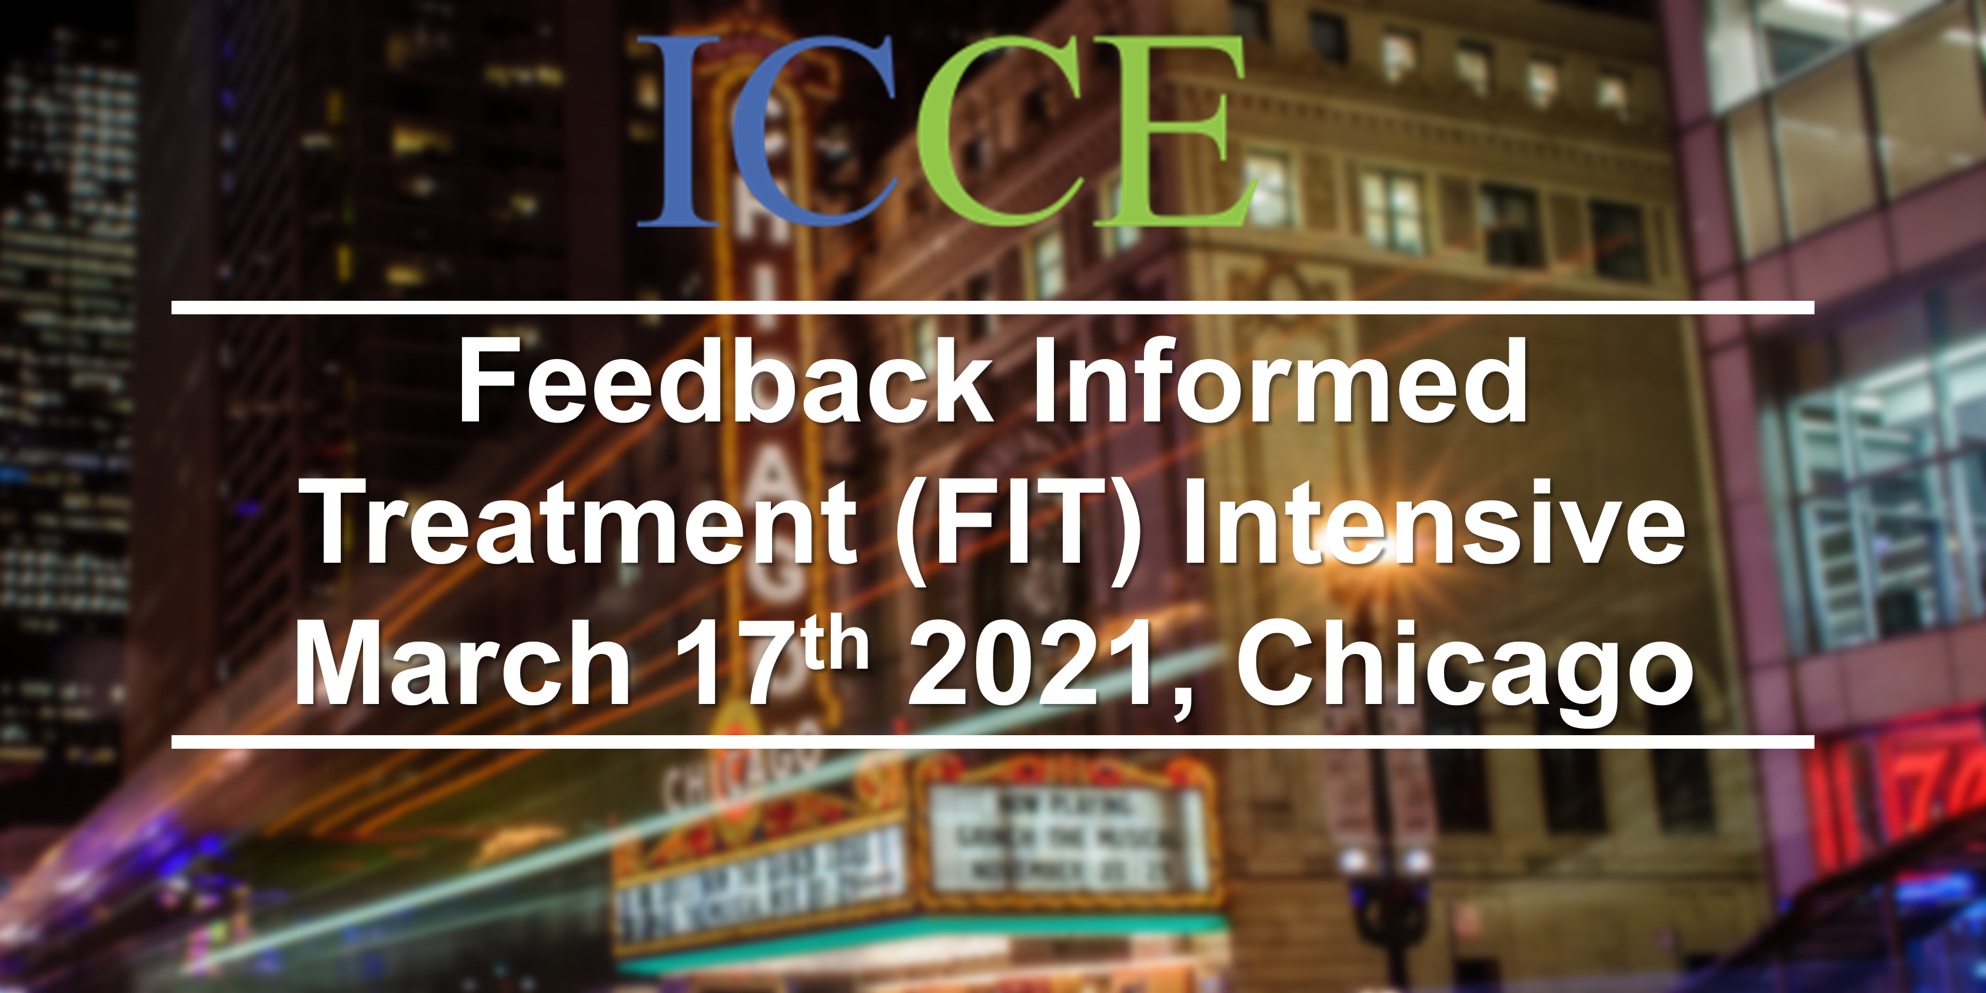 Feedback Informed Treatment (FIT) 2021